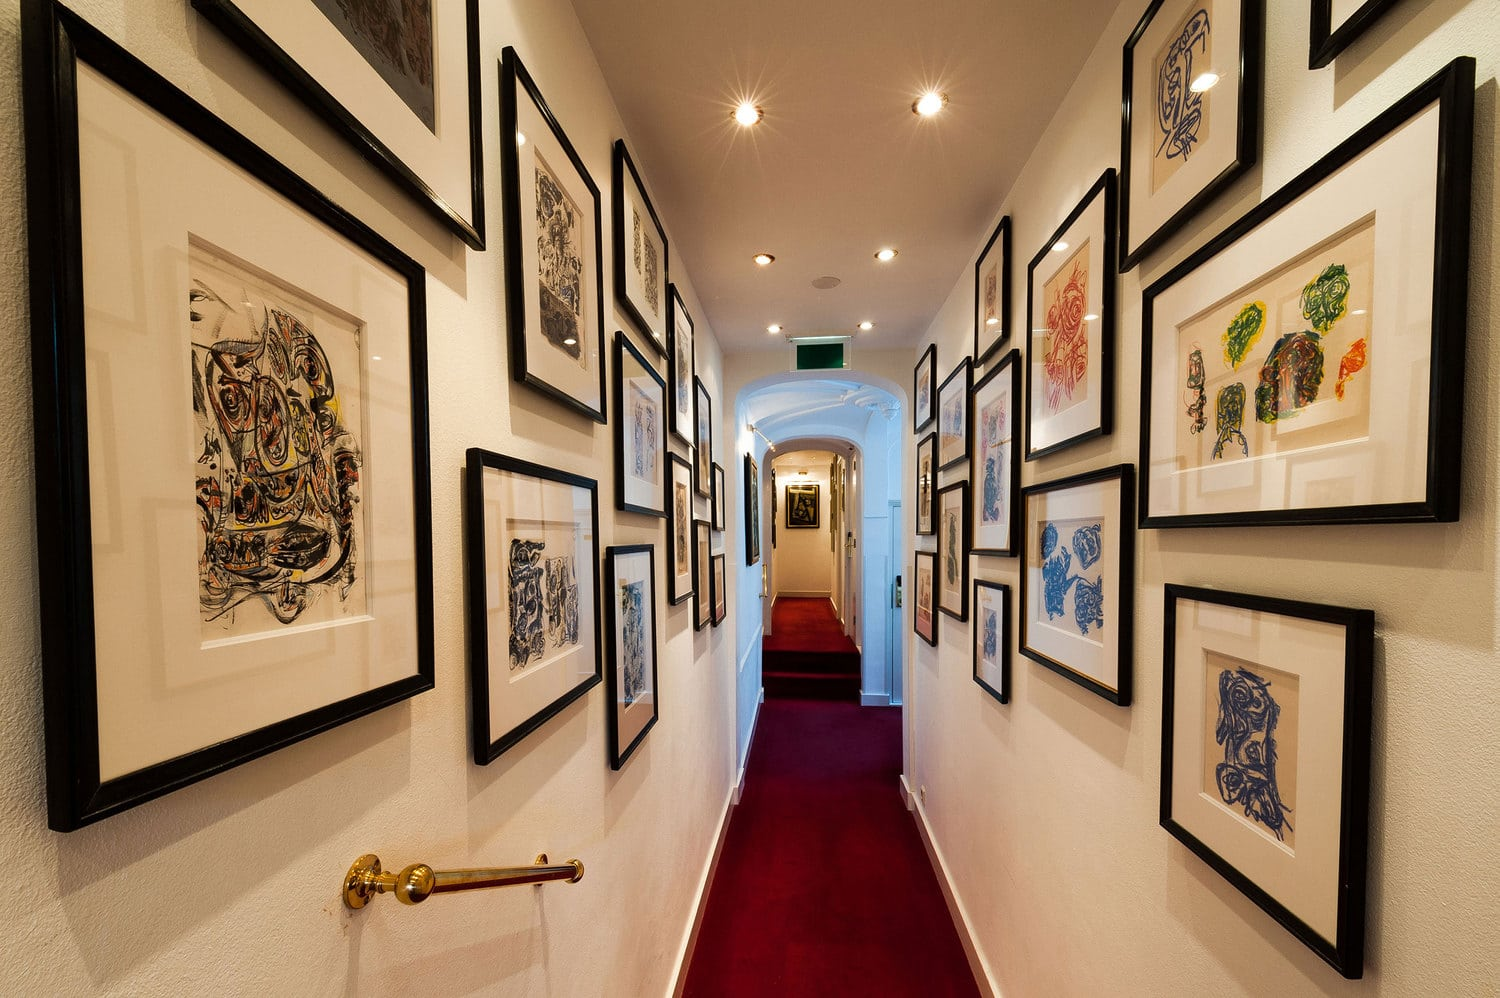 Walkways and hallways are covered in art, and everything has a history and a story to tell